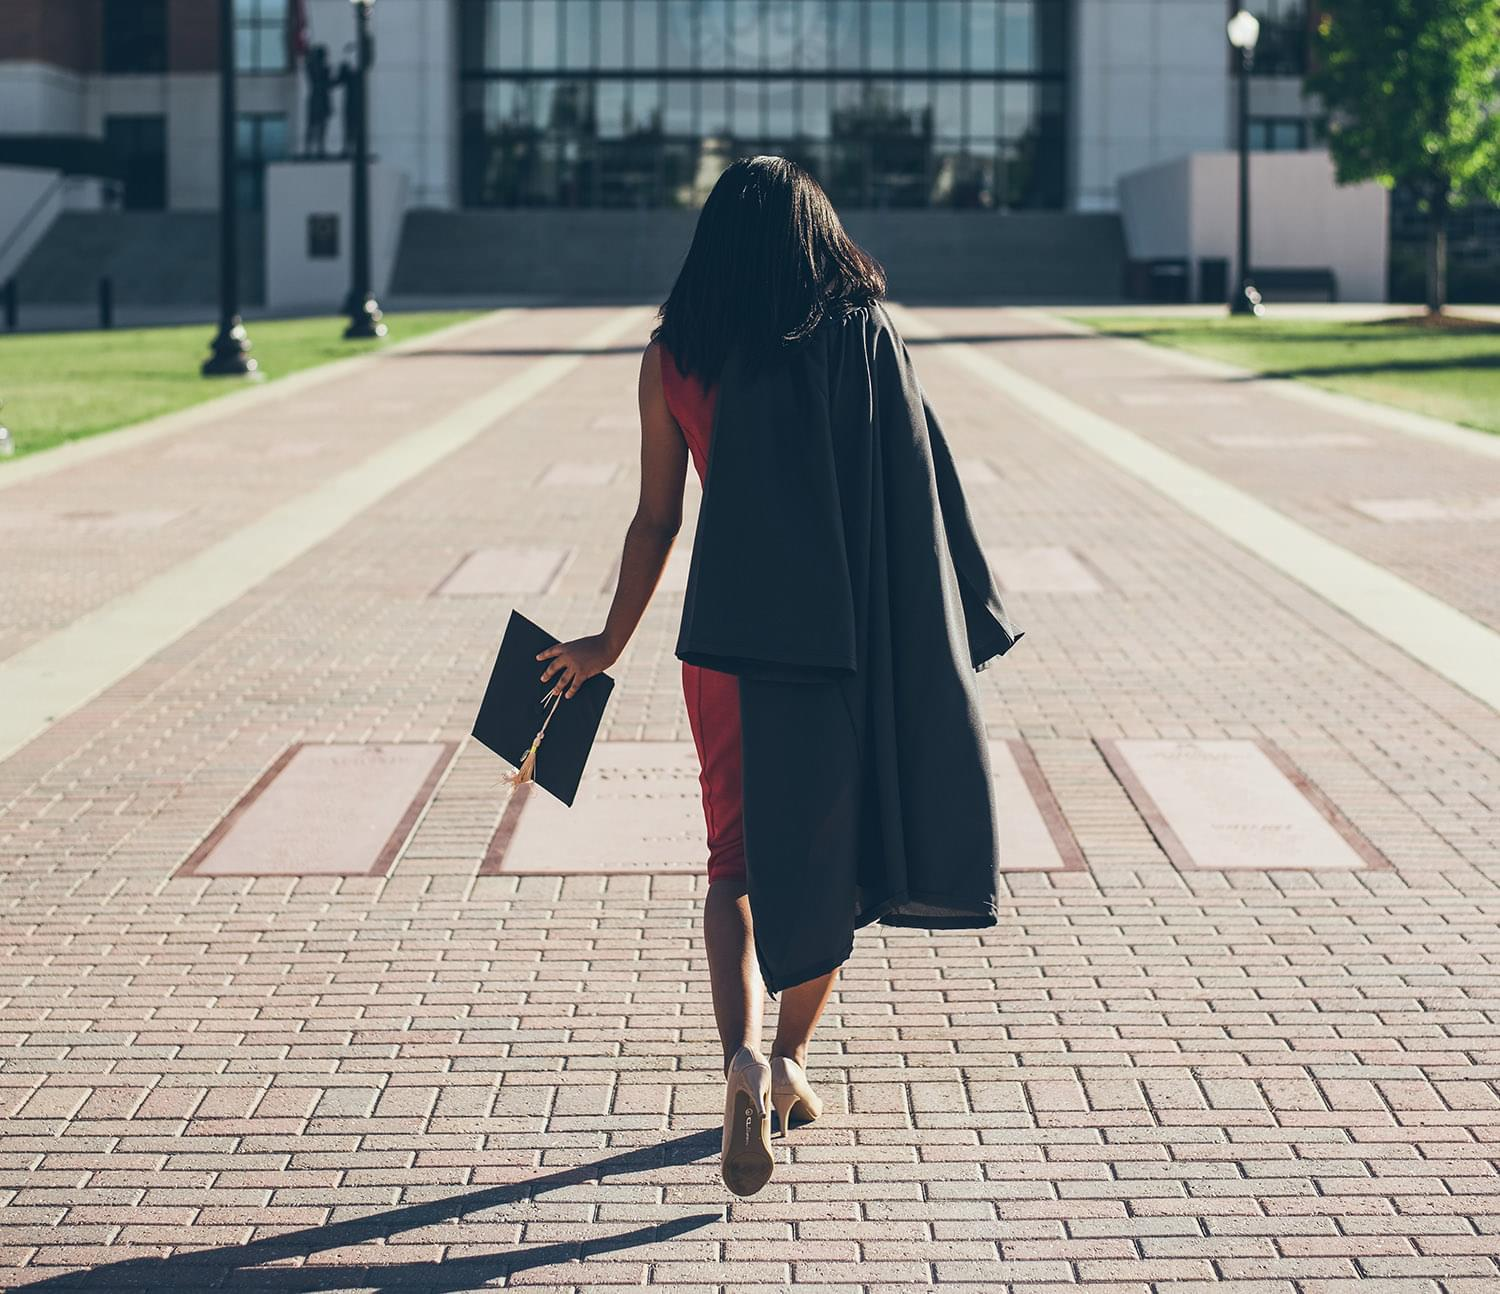 Recent graduate walking on campus with graduation cap and gown